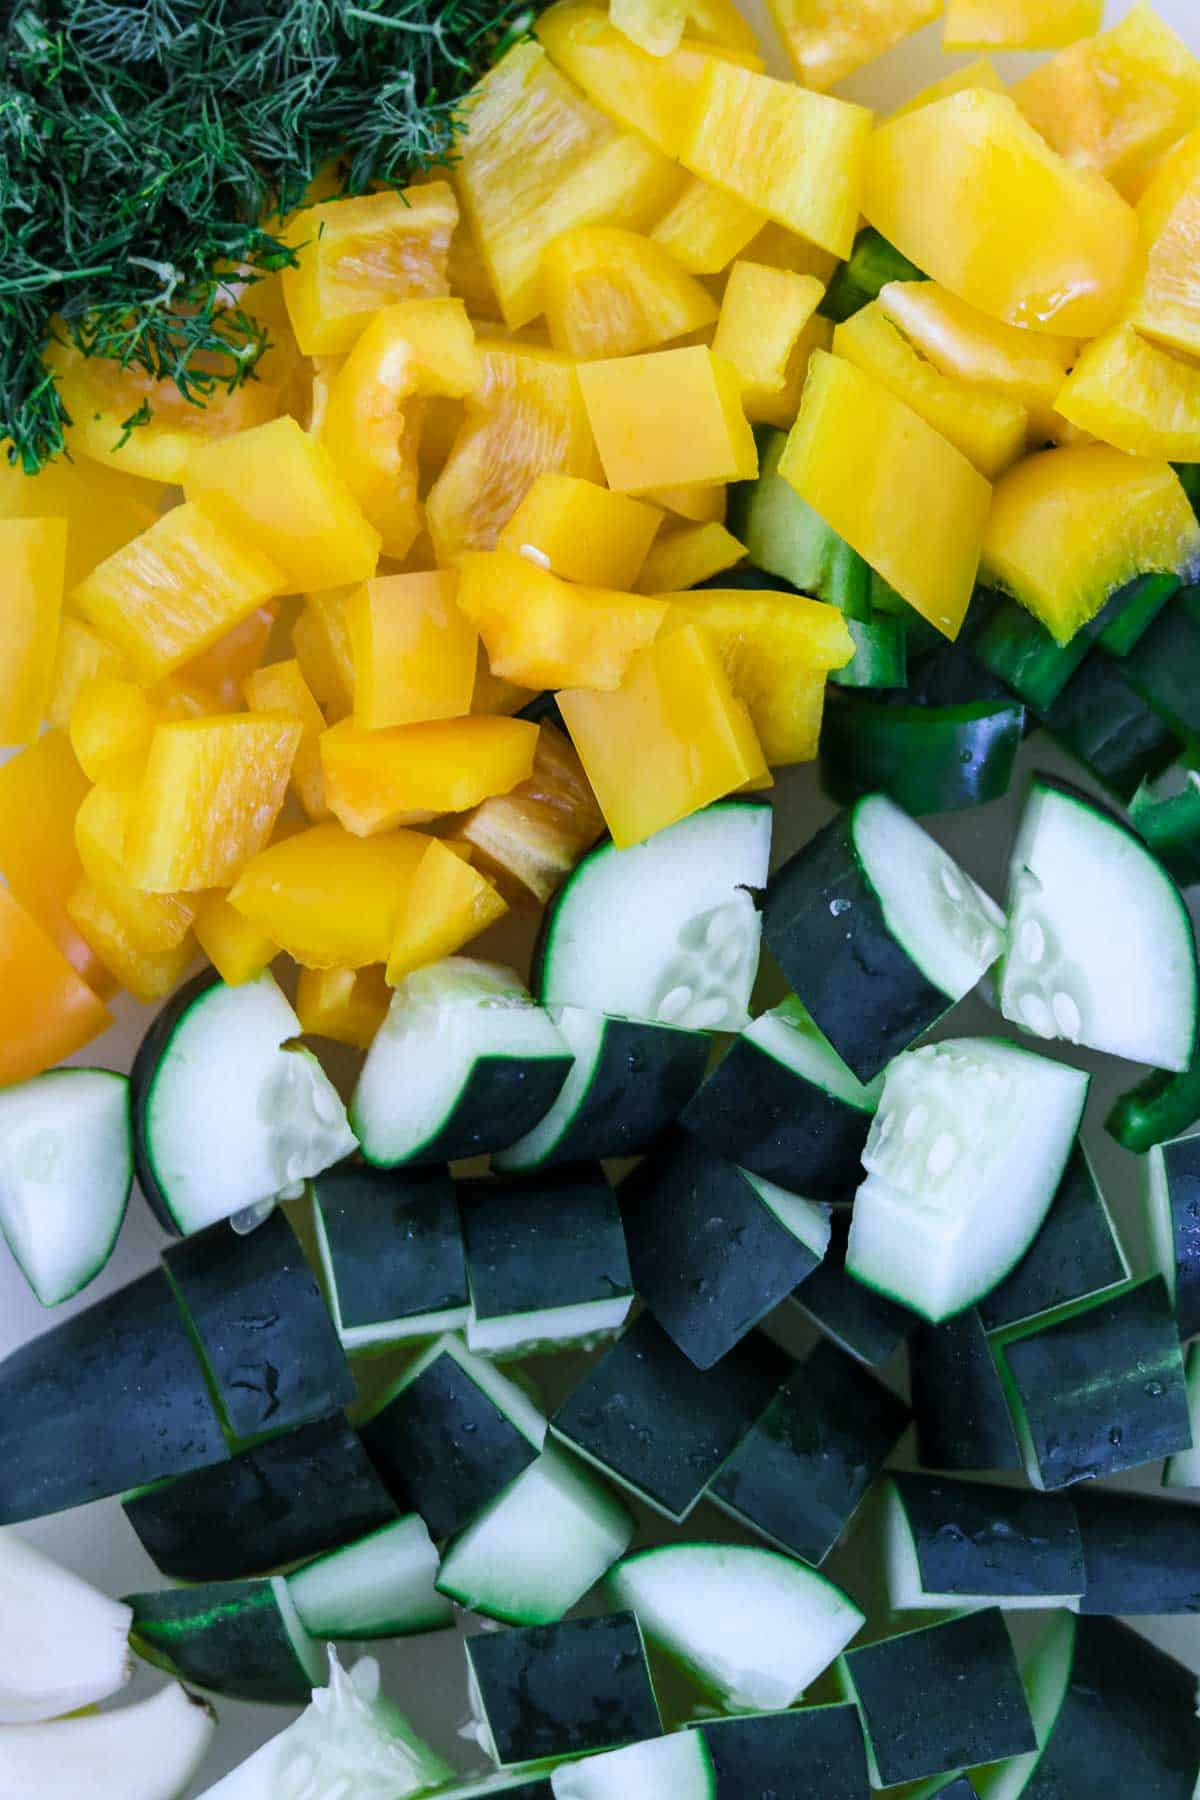 Chopped dill, yellow peppers and cucumbers.